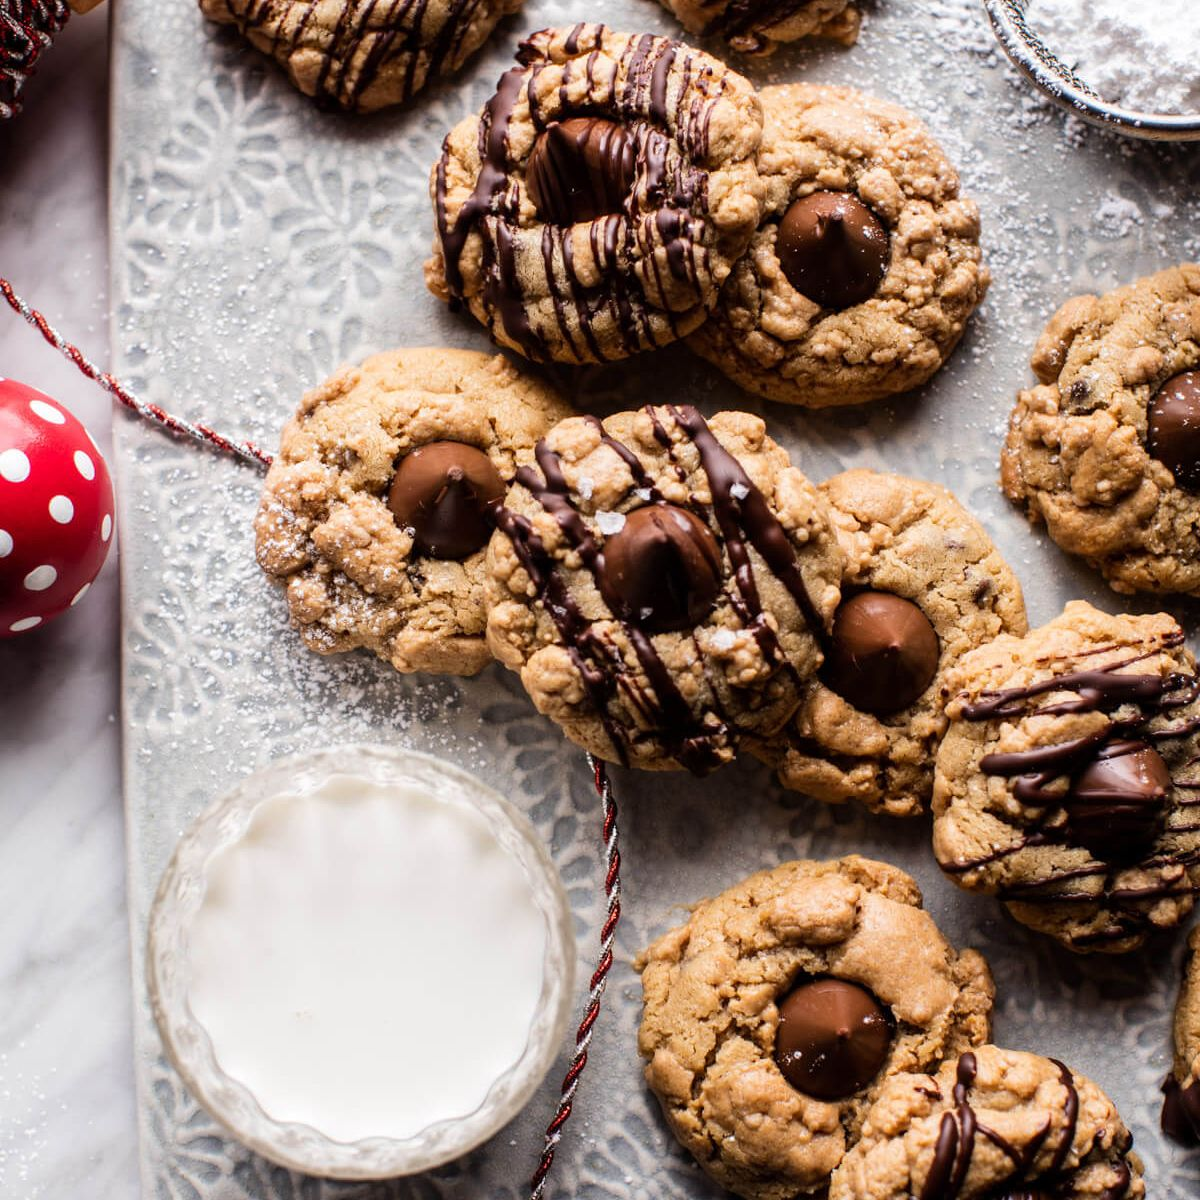 Simple and tasty: universal biscuits for all occasions